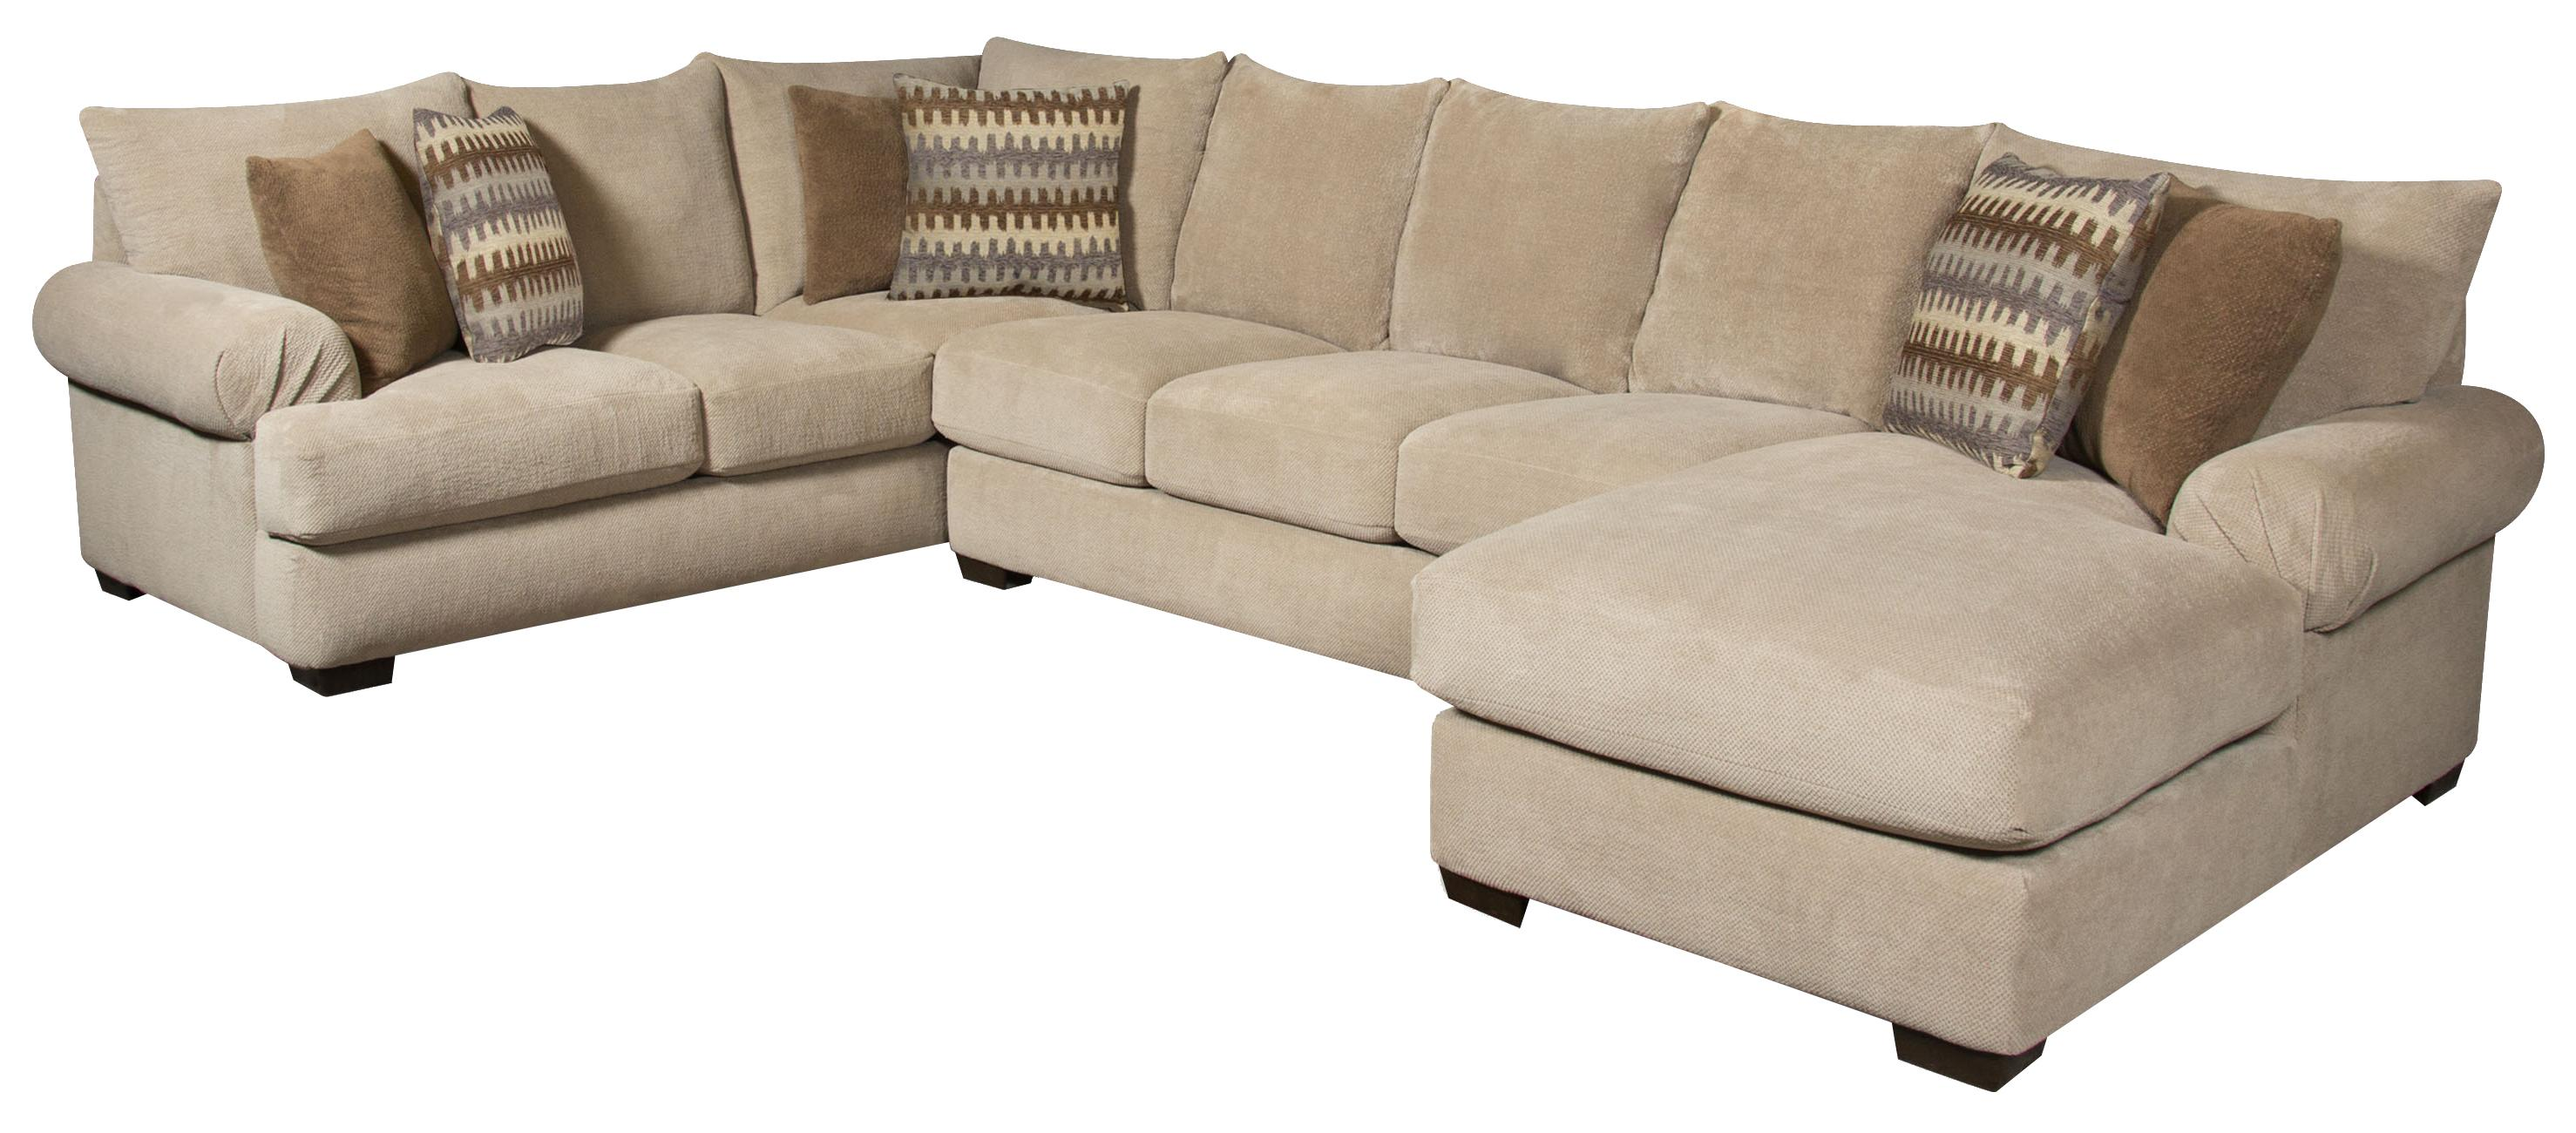 couch ideas sofa sectional room with in curved awesome